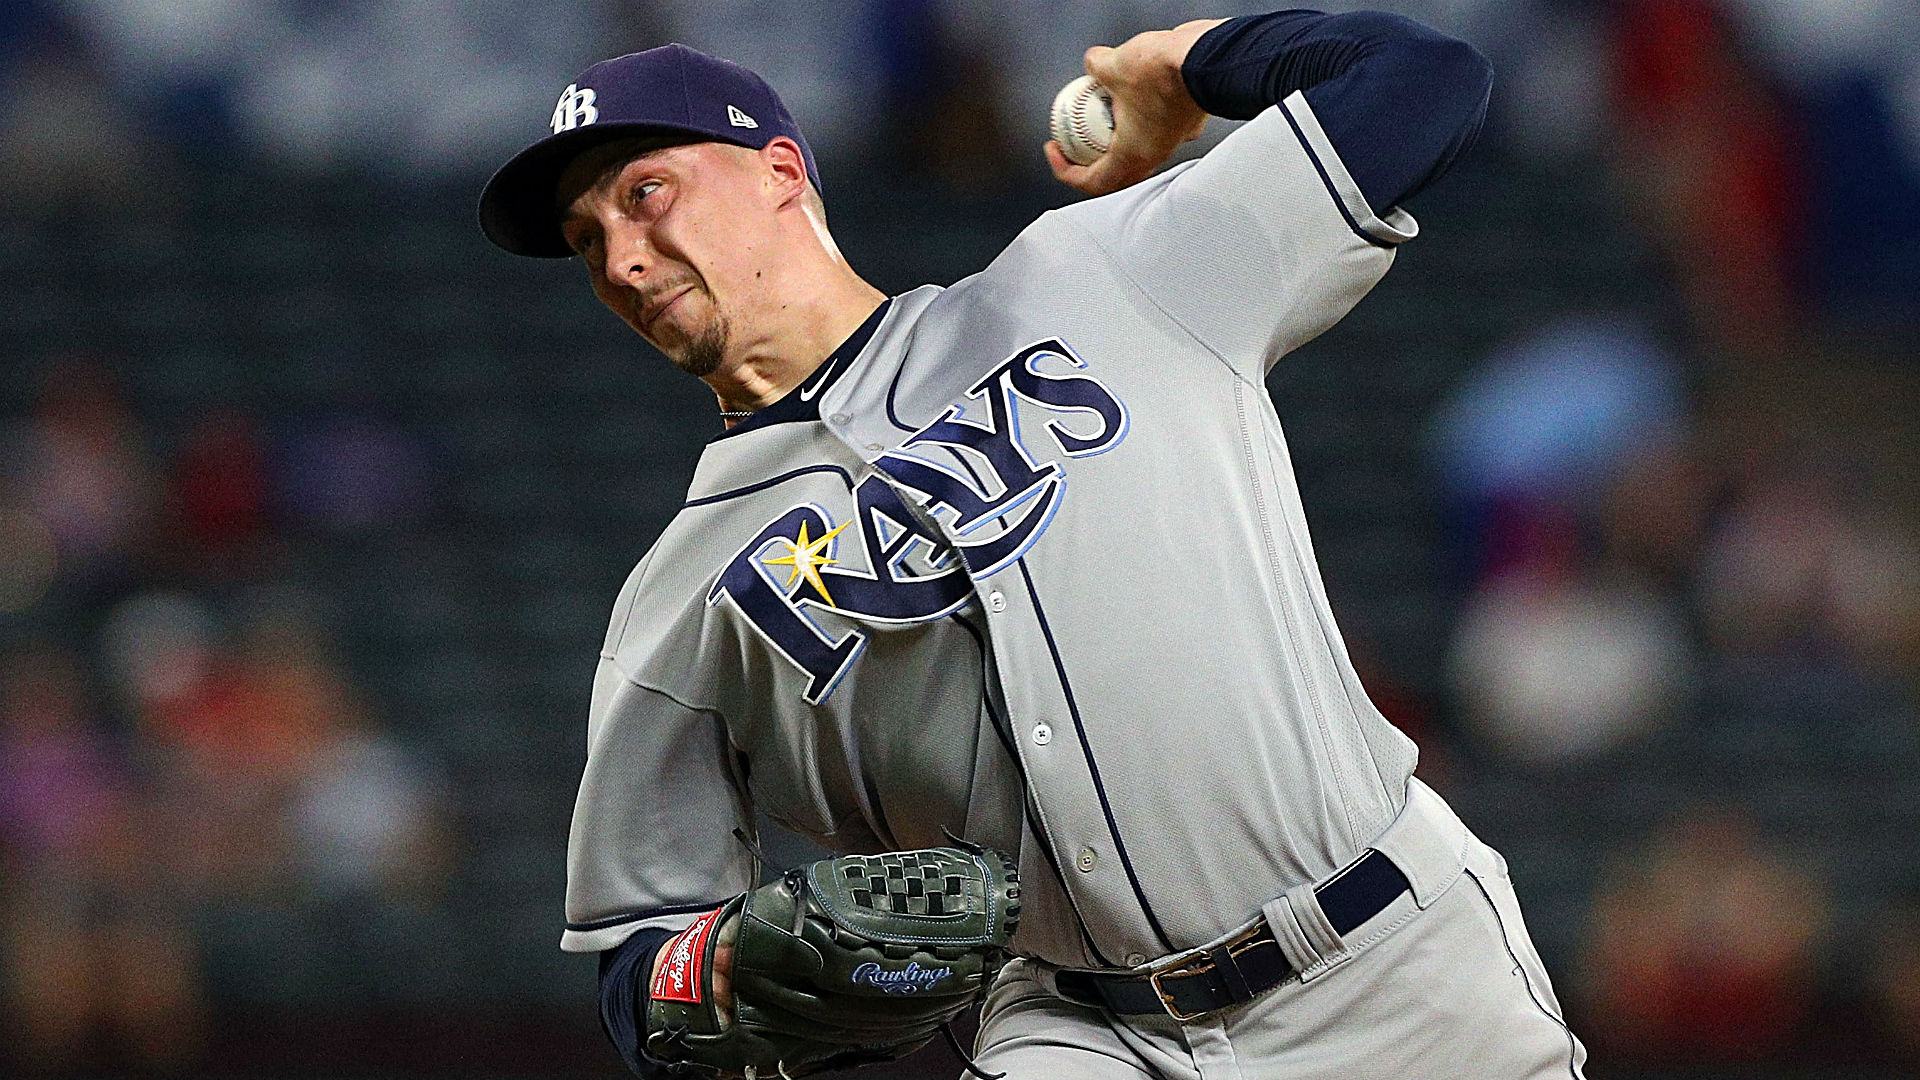 Rays' Blake Snell says playing is too risky if his pay is too low